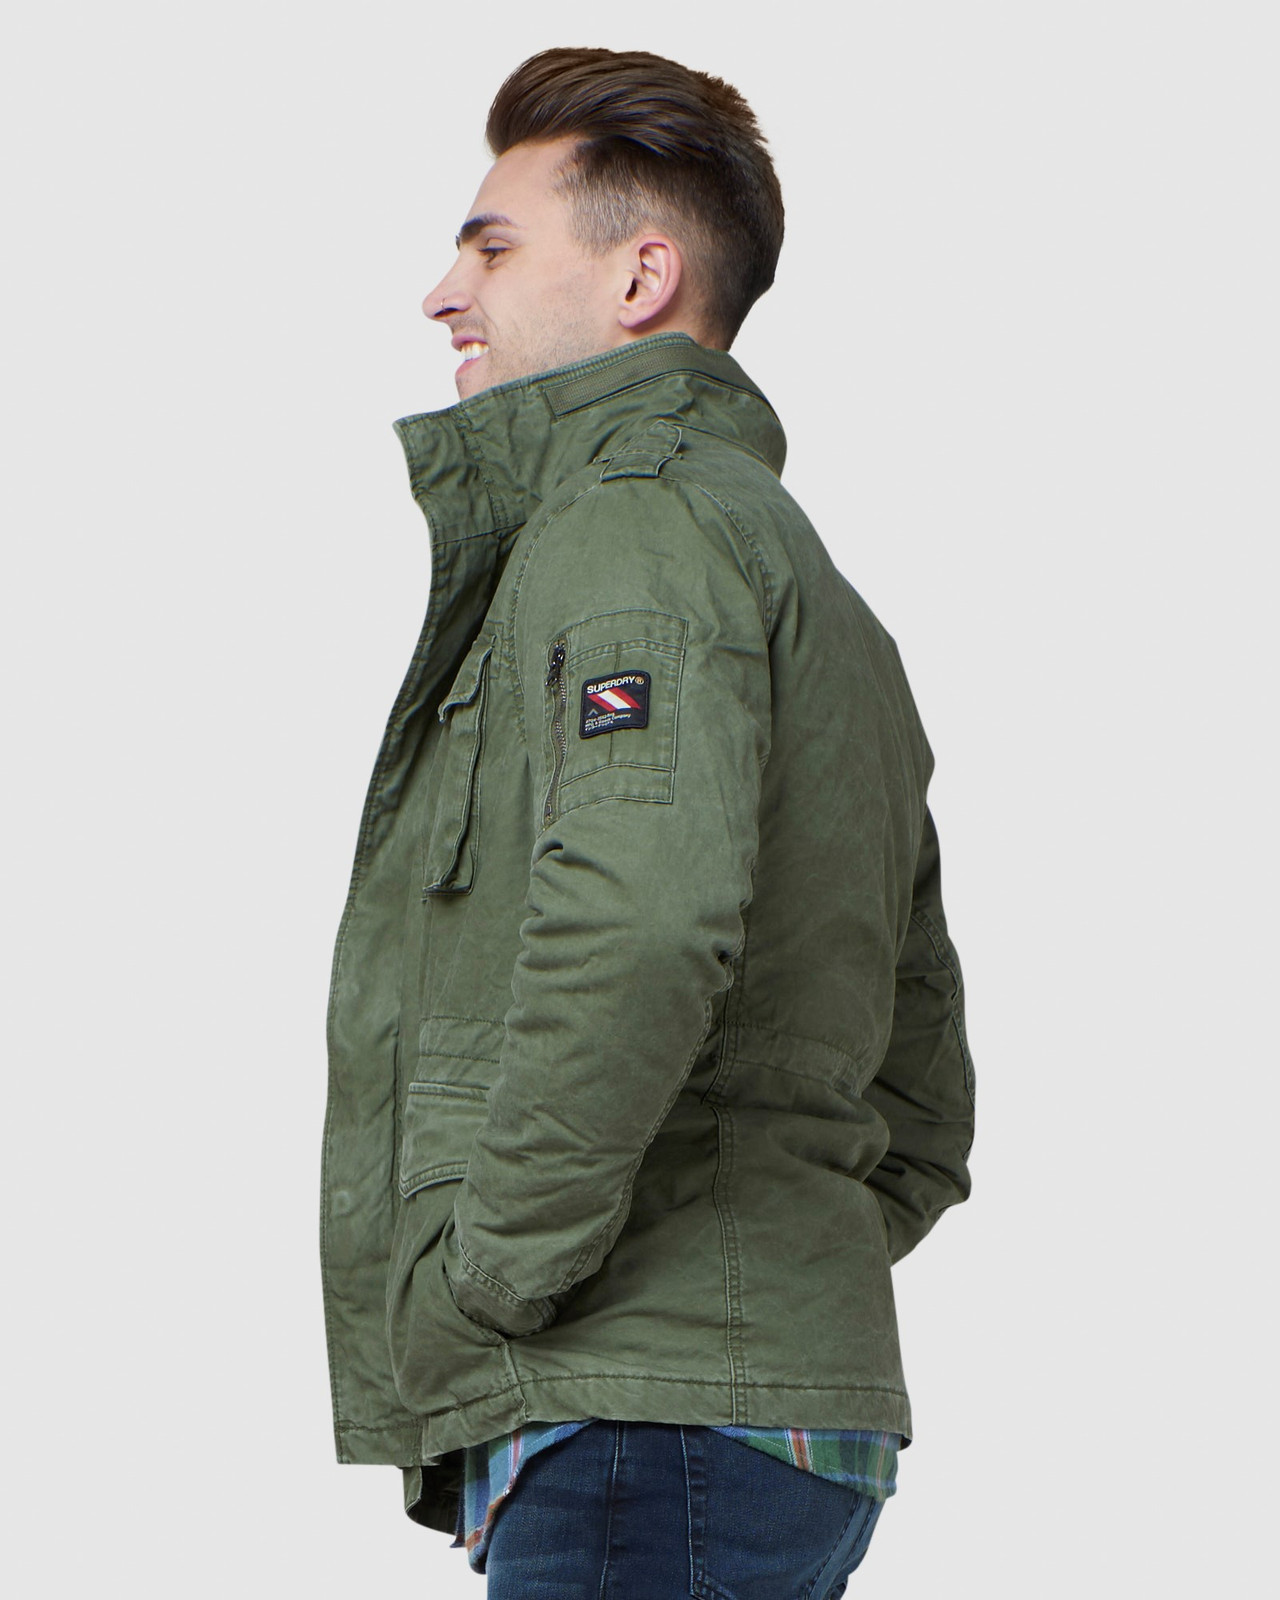 Superdry Mens CLASSIC ROOKIE JACKET Green Military Jackets 2